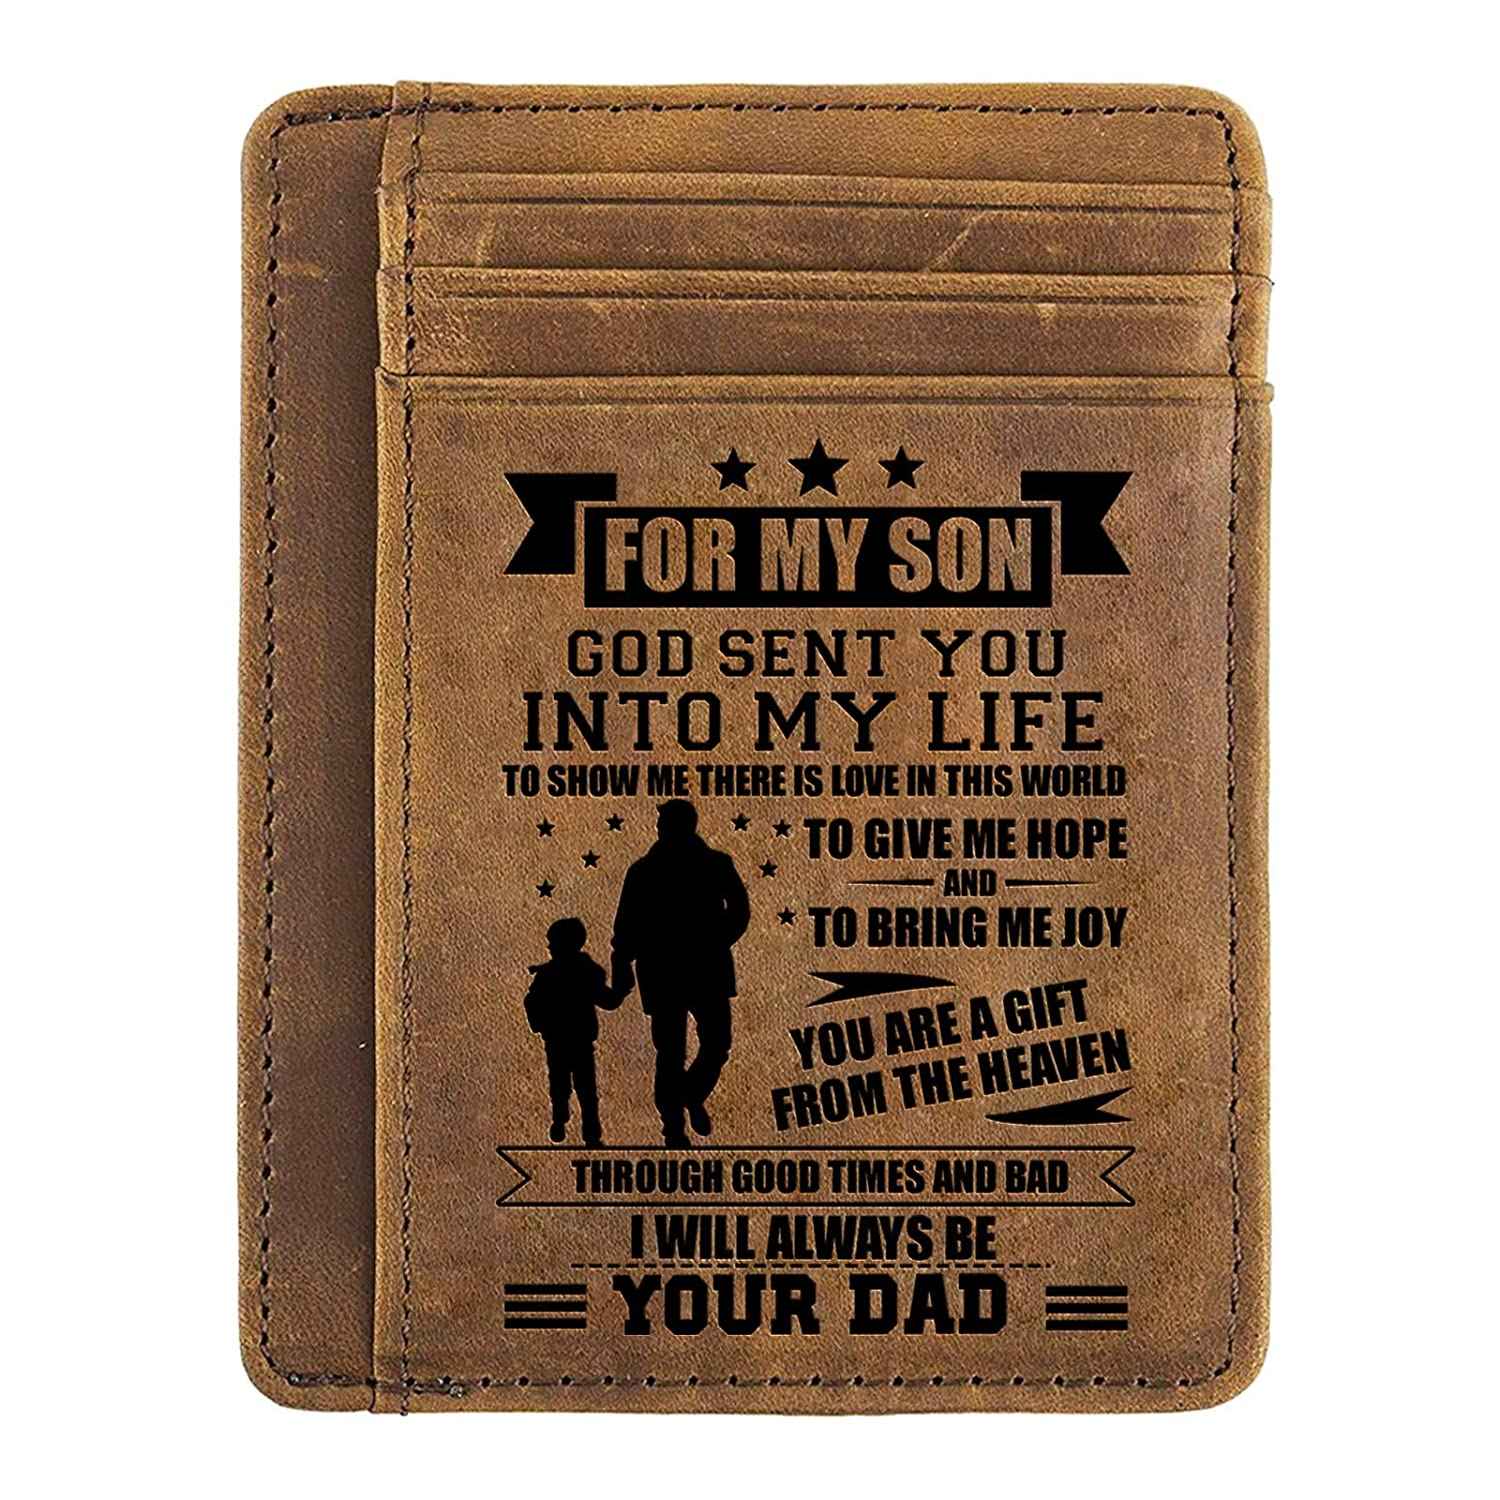 e1d78449e7fe Amazon.com  Minimalist Wallets Gift for Son from Dad - Engraved Leather  Front Pocket Wallet - Custom Wallet RFID Blocking (A - Dad to Son)  Clothing